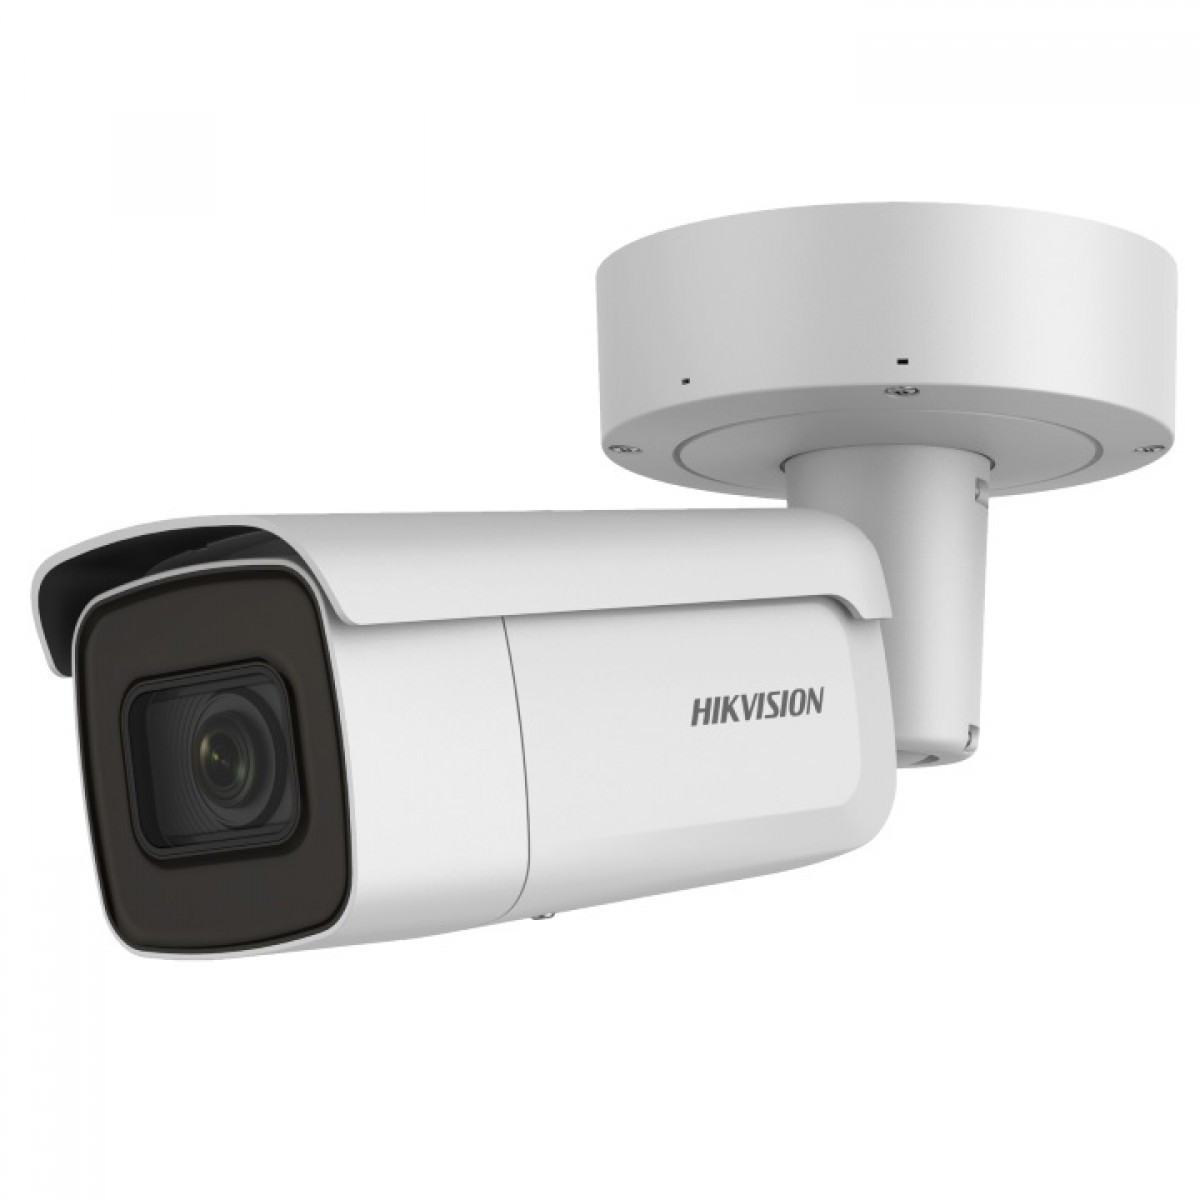 Сетевая IP-видеокамера Hikvision DS-2CD2655FWD-IZS